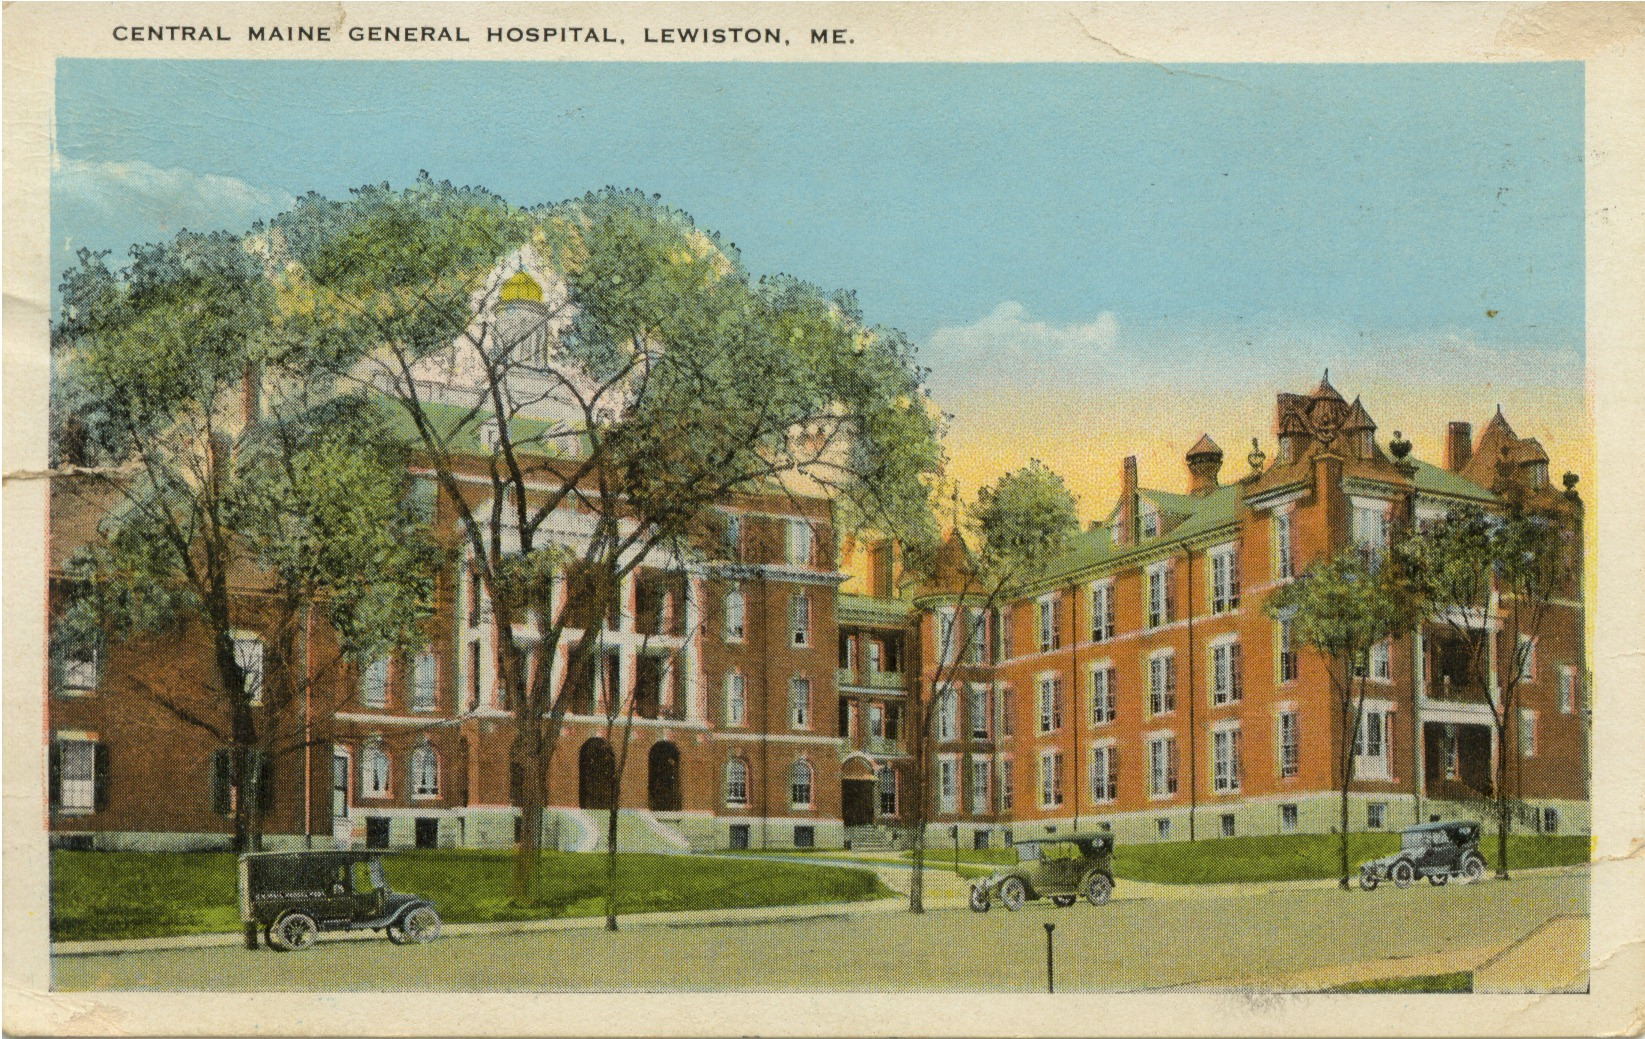 004-Central Maine General Hospital